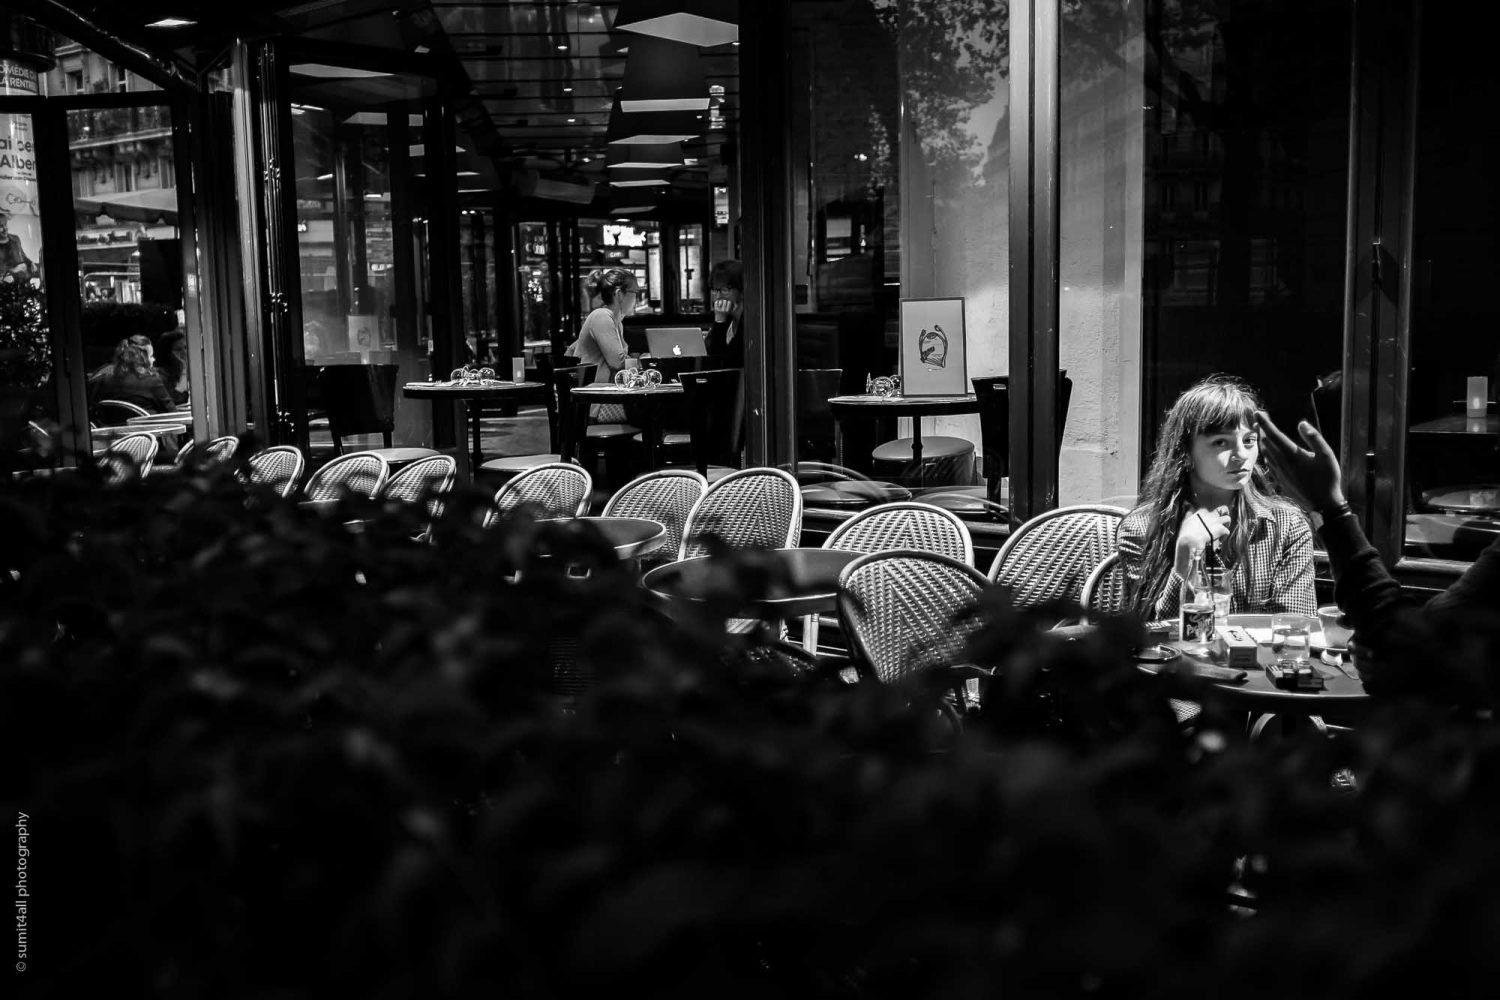 Evening Coffee in a Cafe in Paris